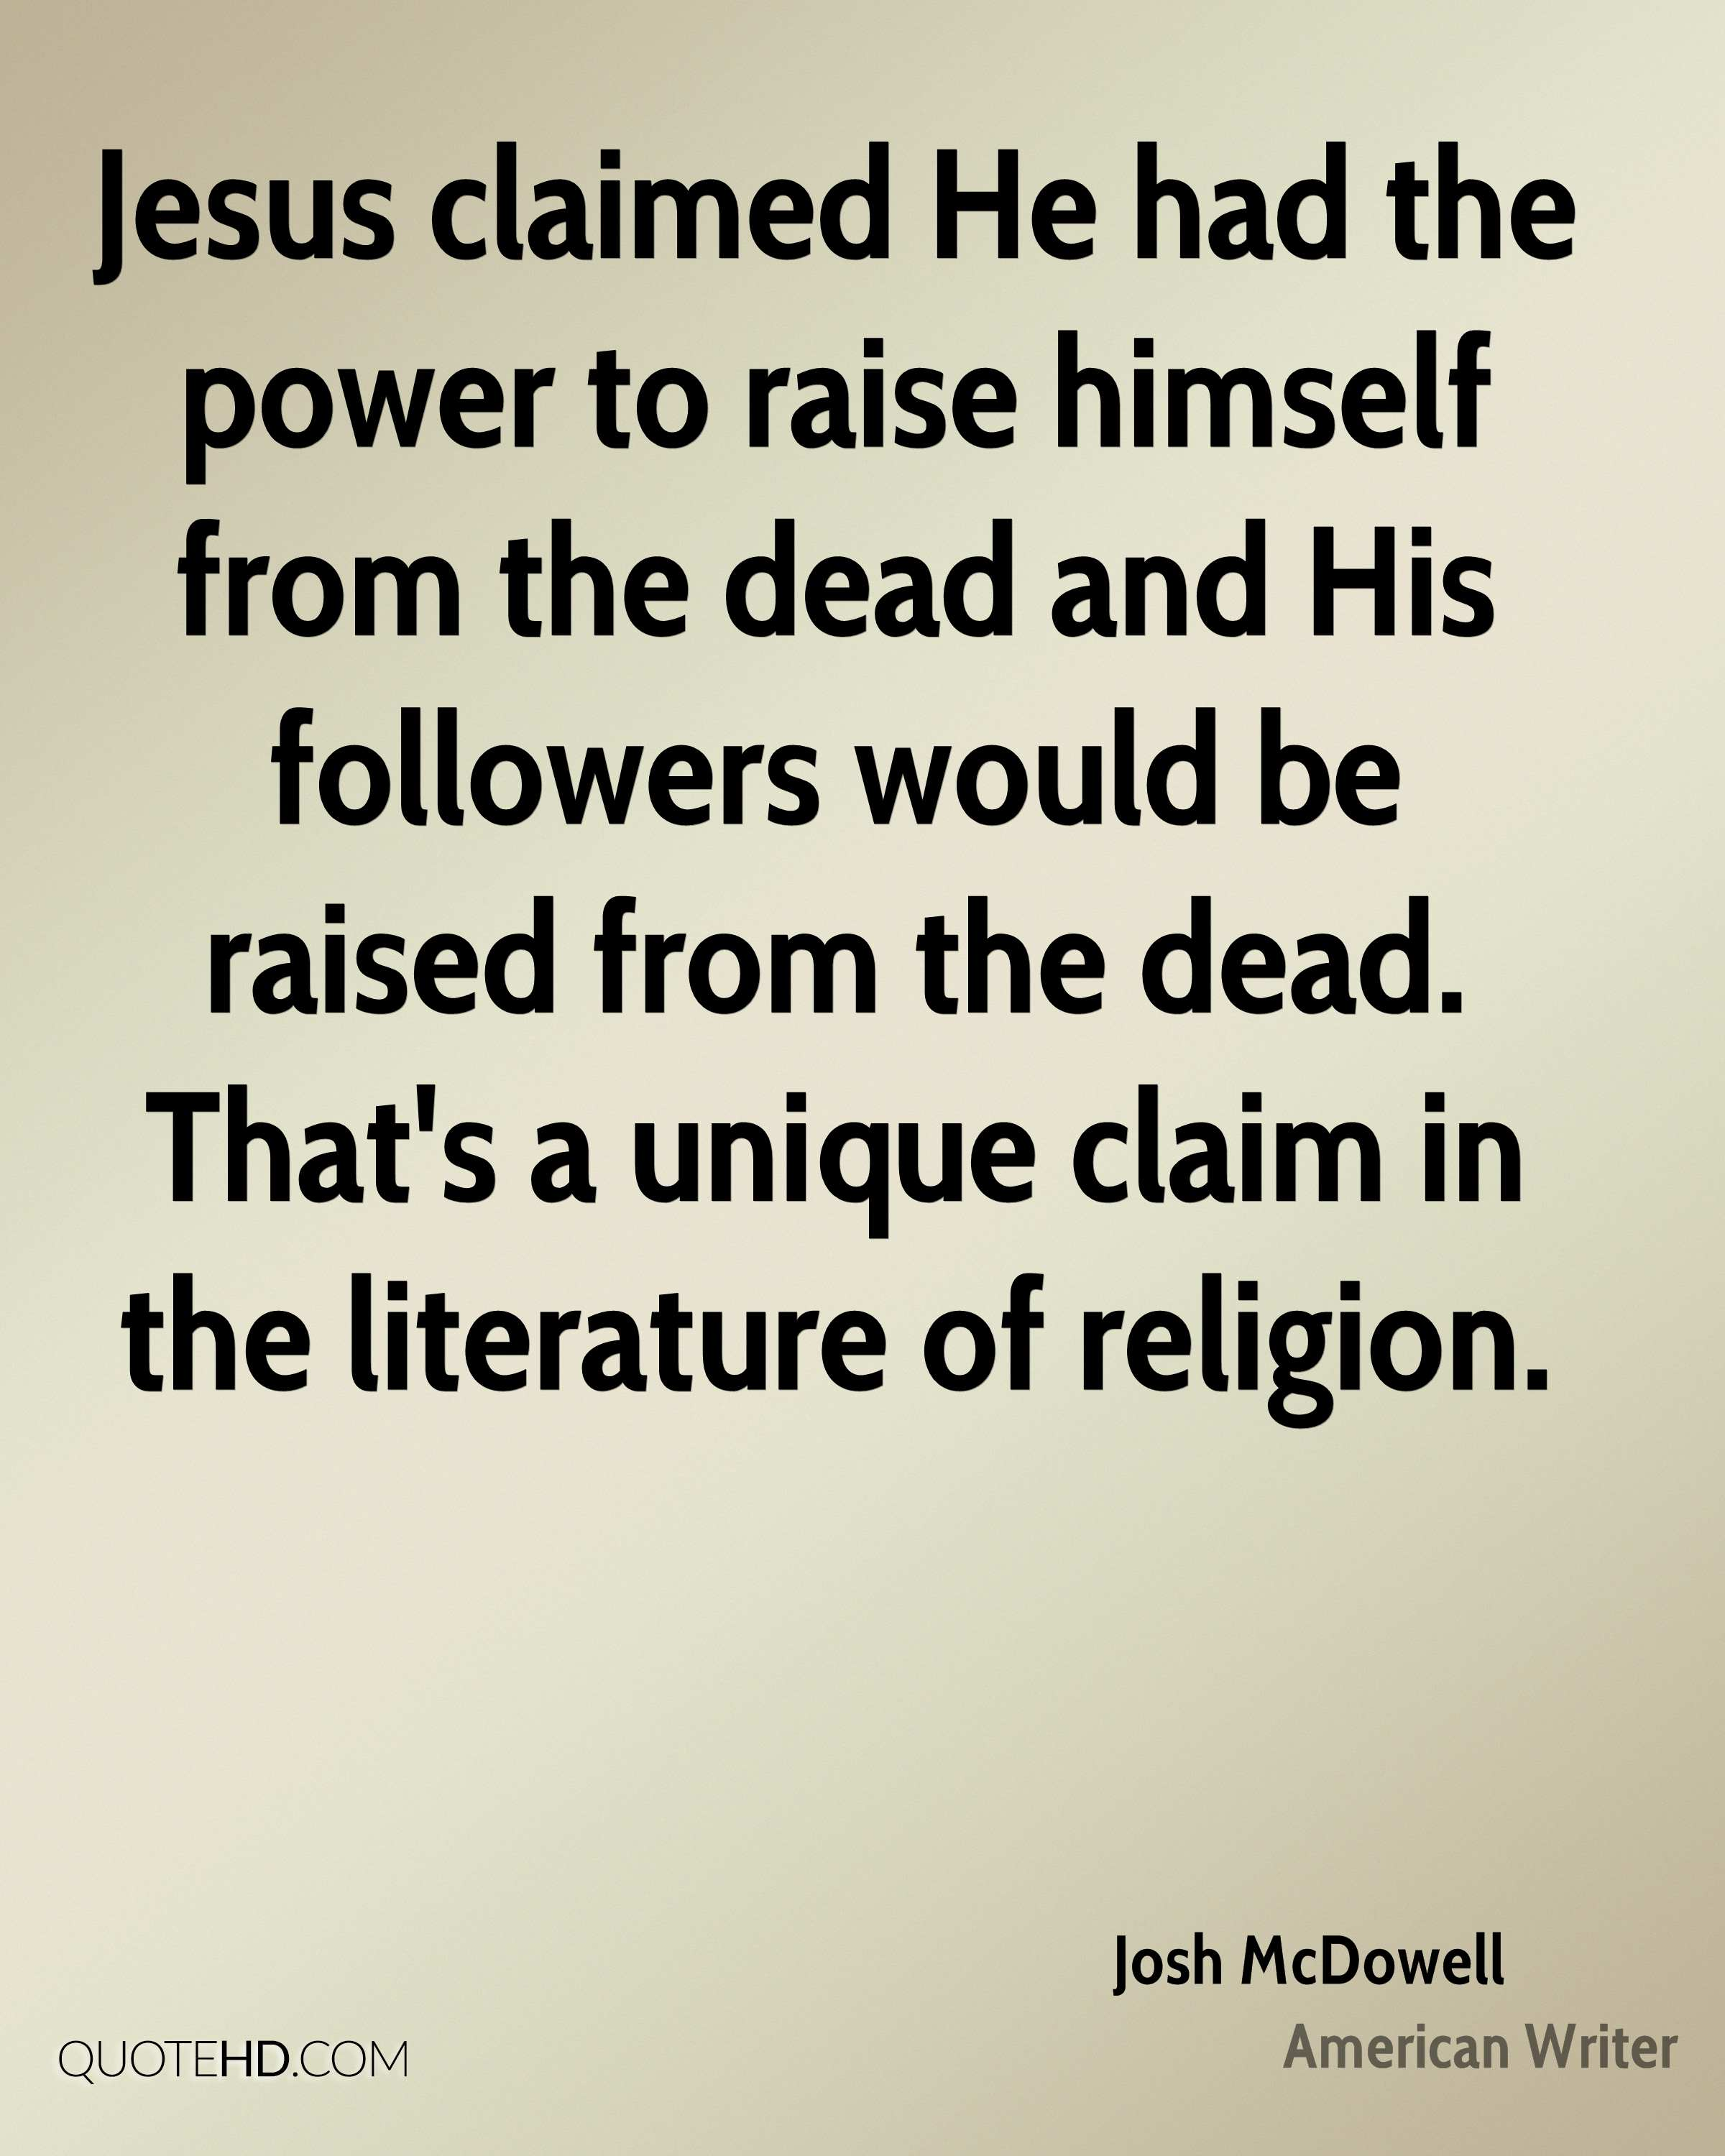 Jesus claimed He had the power to raise himself from the dead and His followers would be raised from the dead. That's a unique claim in the literature of religion.